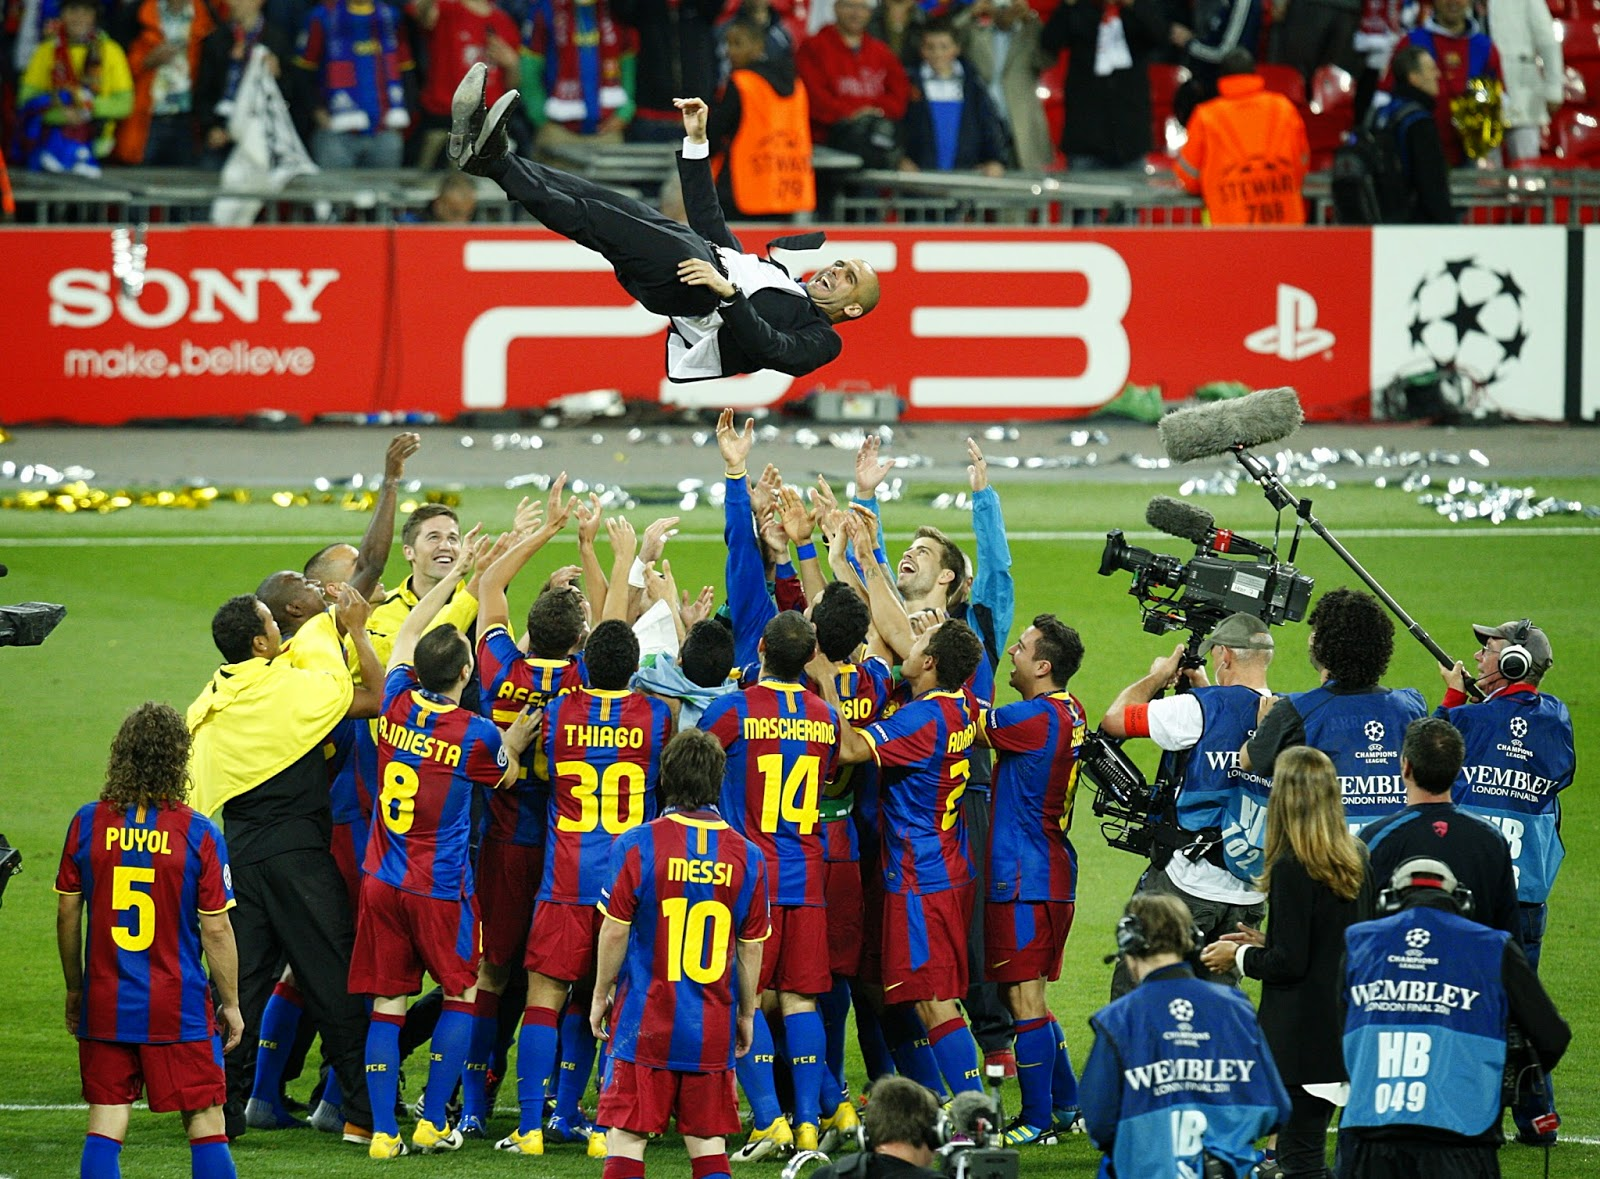 2011 Champions League Final - Barcelona v Manchester United